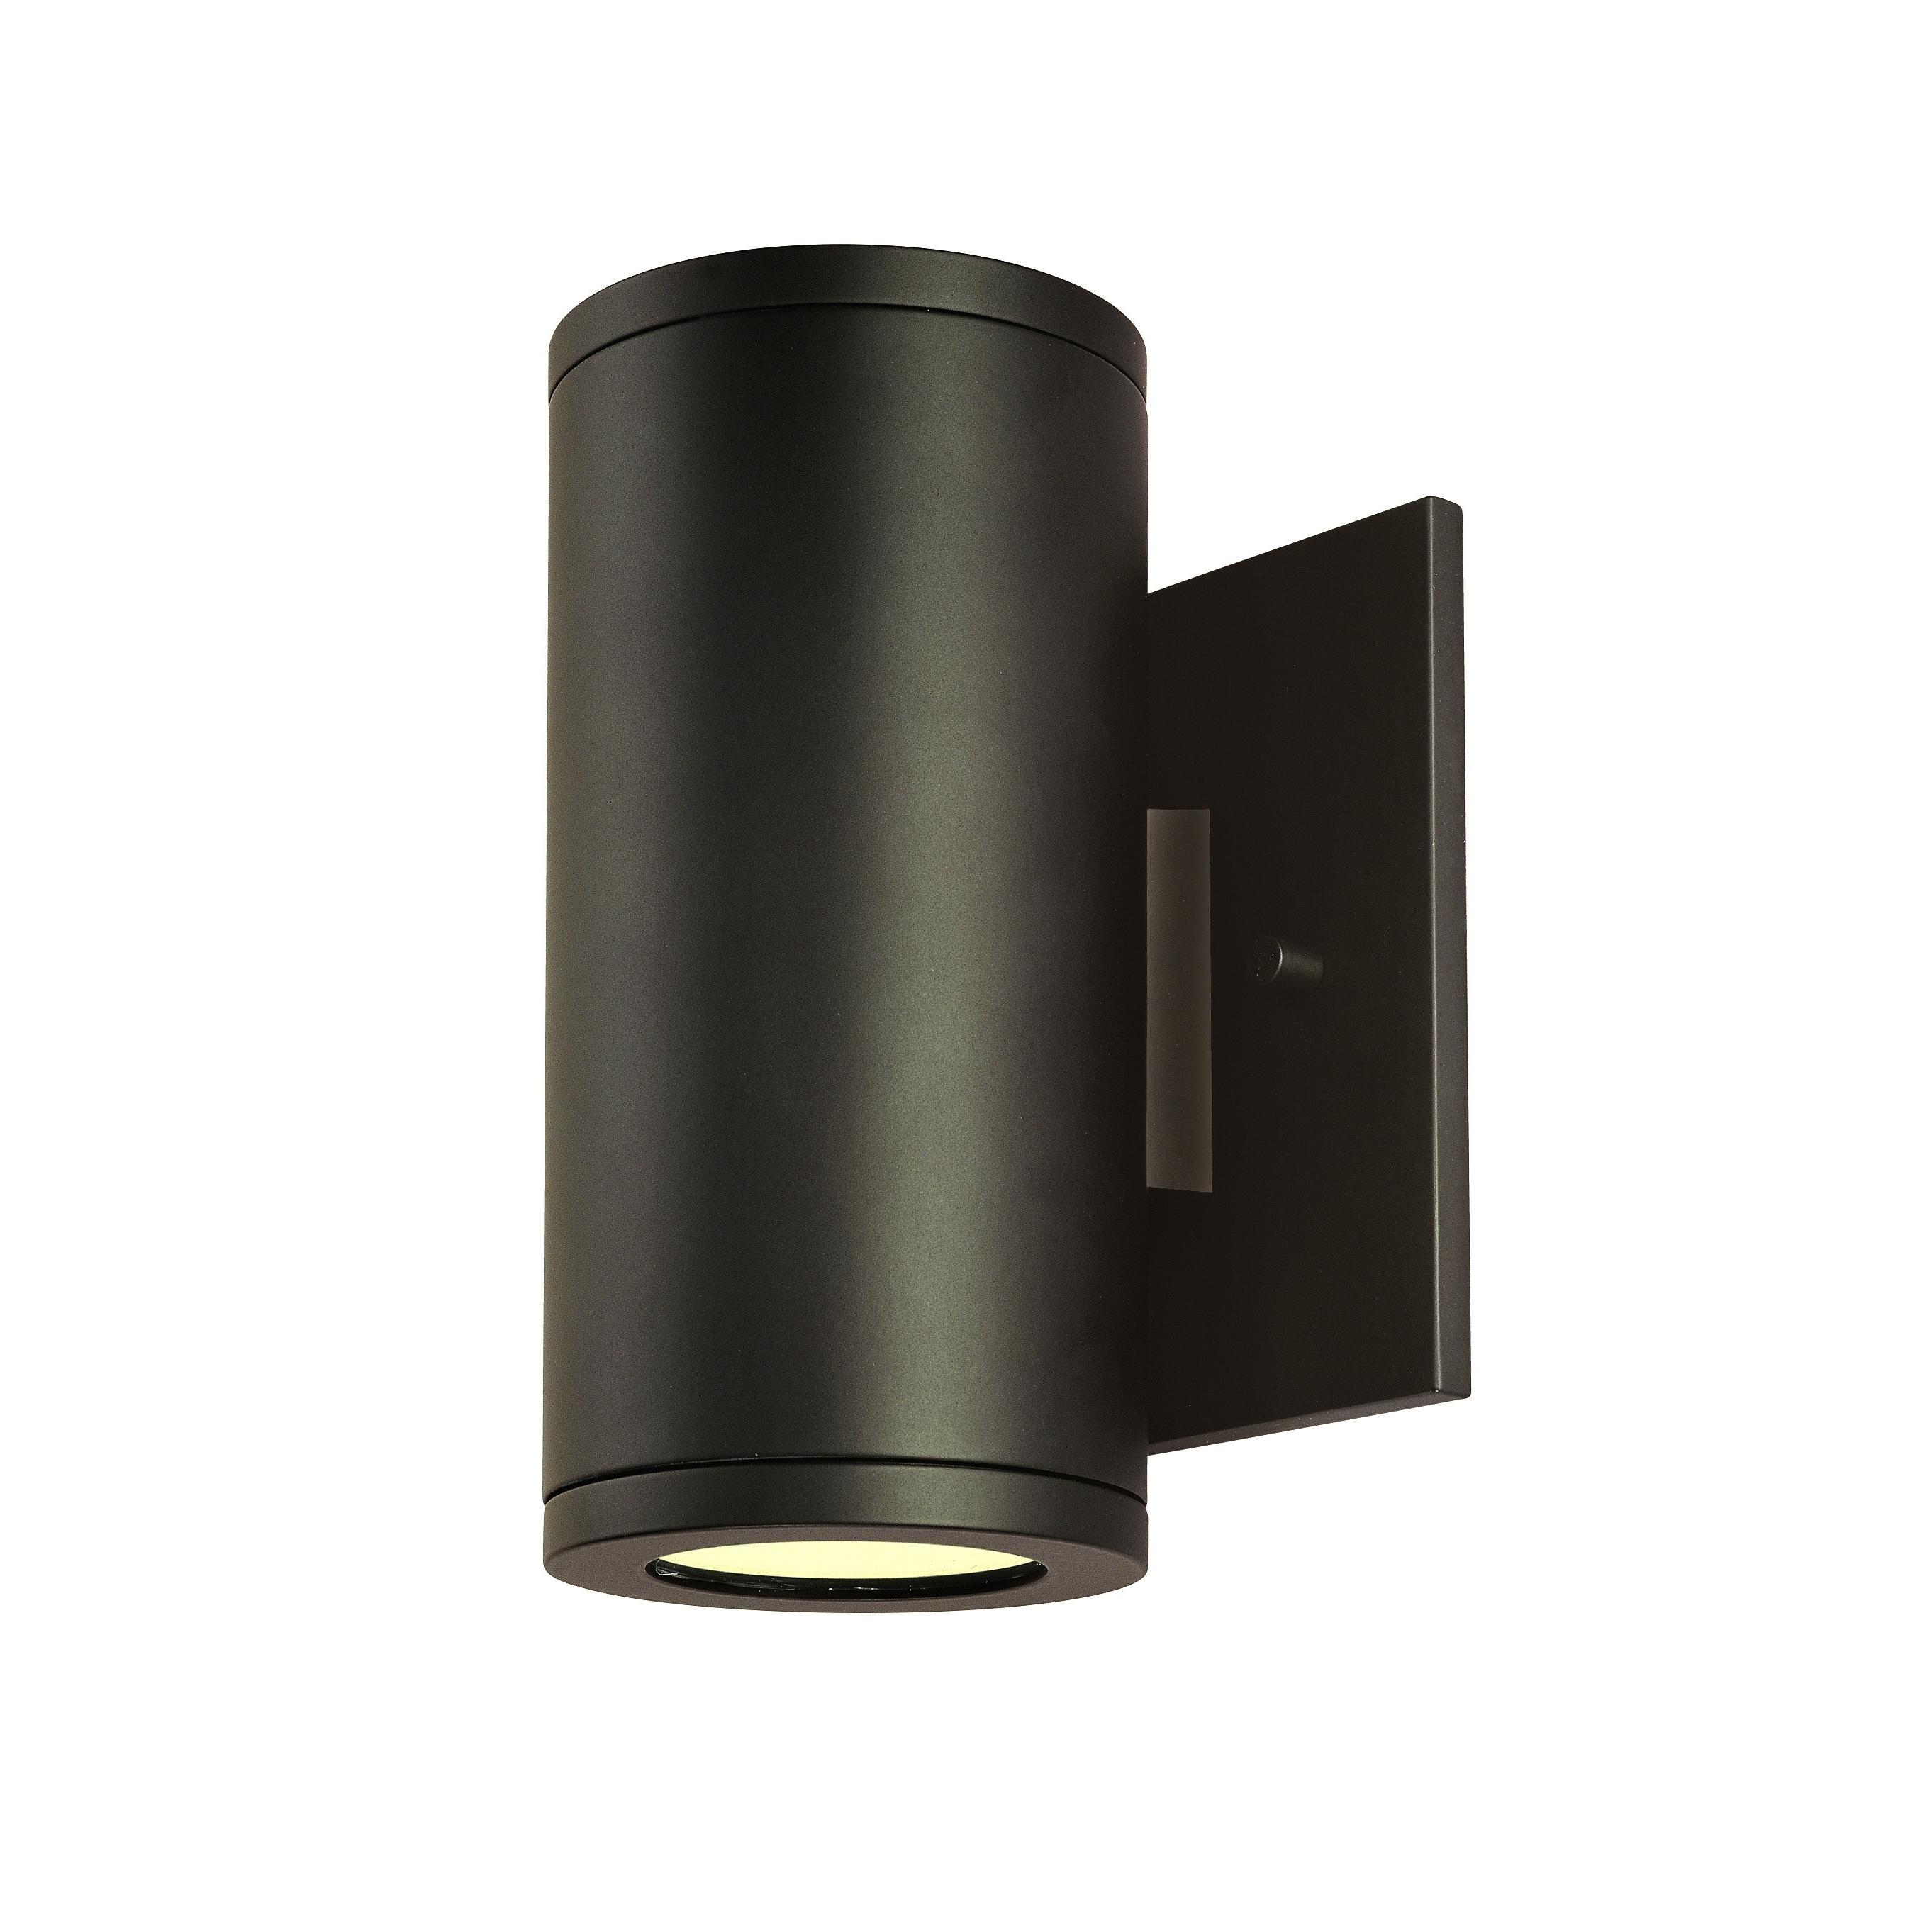 Trendy 36 Outdoor Commercial Wall Sconces, Wall Sconces Wall Sconce Intended For Modern Garden Porch Light Fixtures At Wayfair (View 18 of 20)